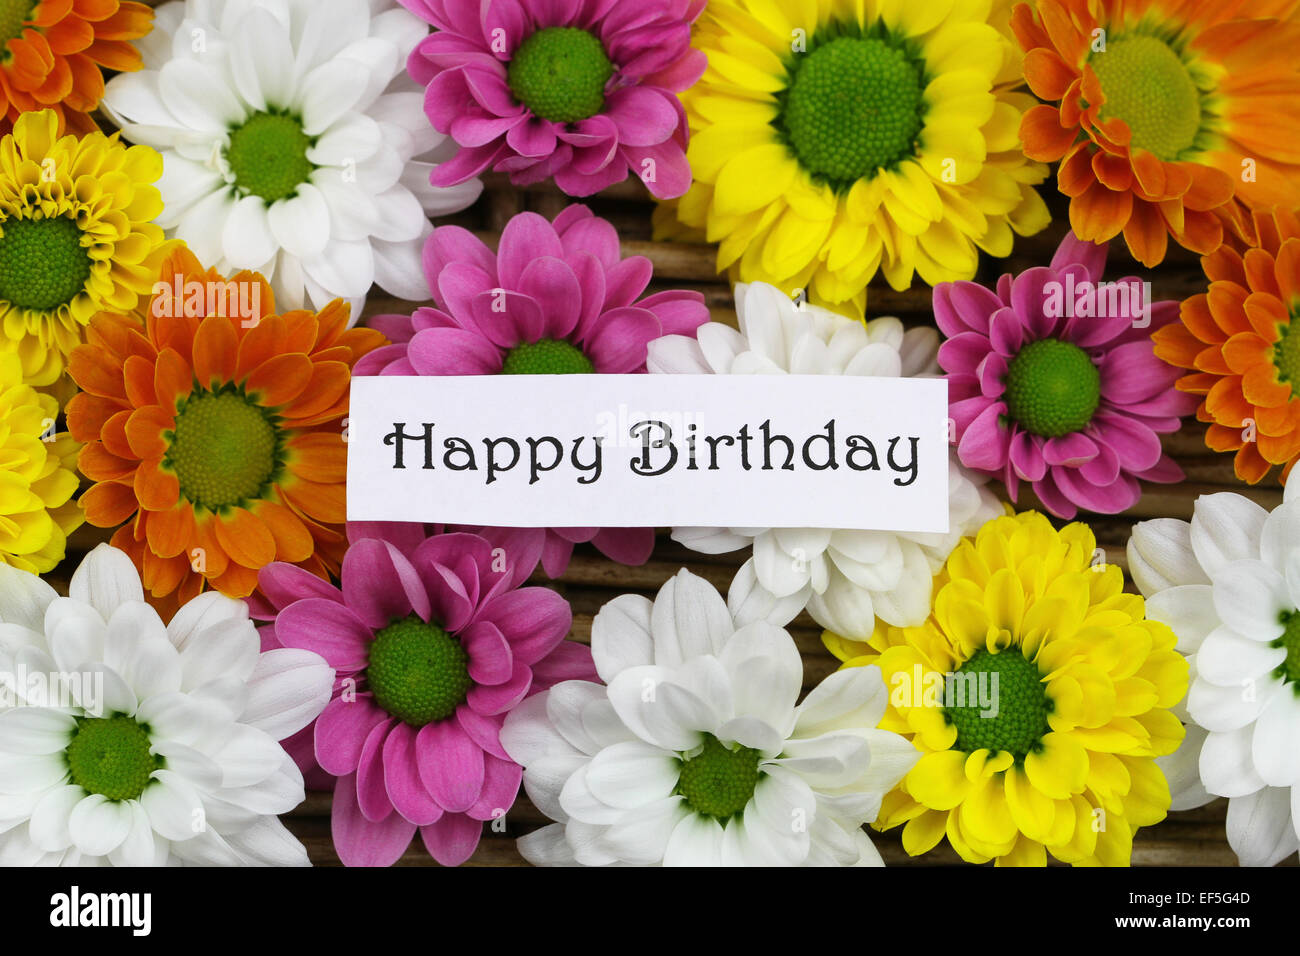 Happy birthday card with colorful santini flowers stock photo happy birthday card with colorful santini flowers izmirmasajfo Image collections